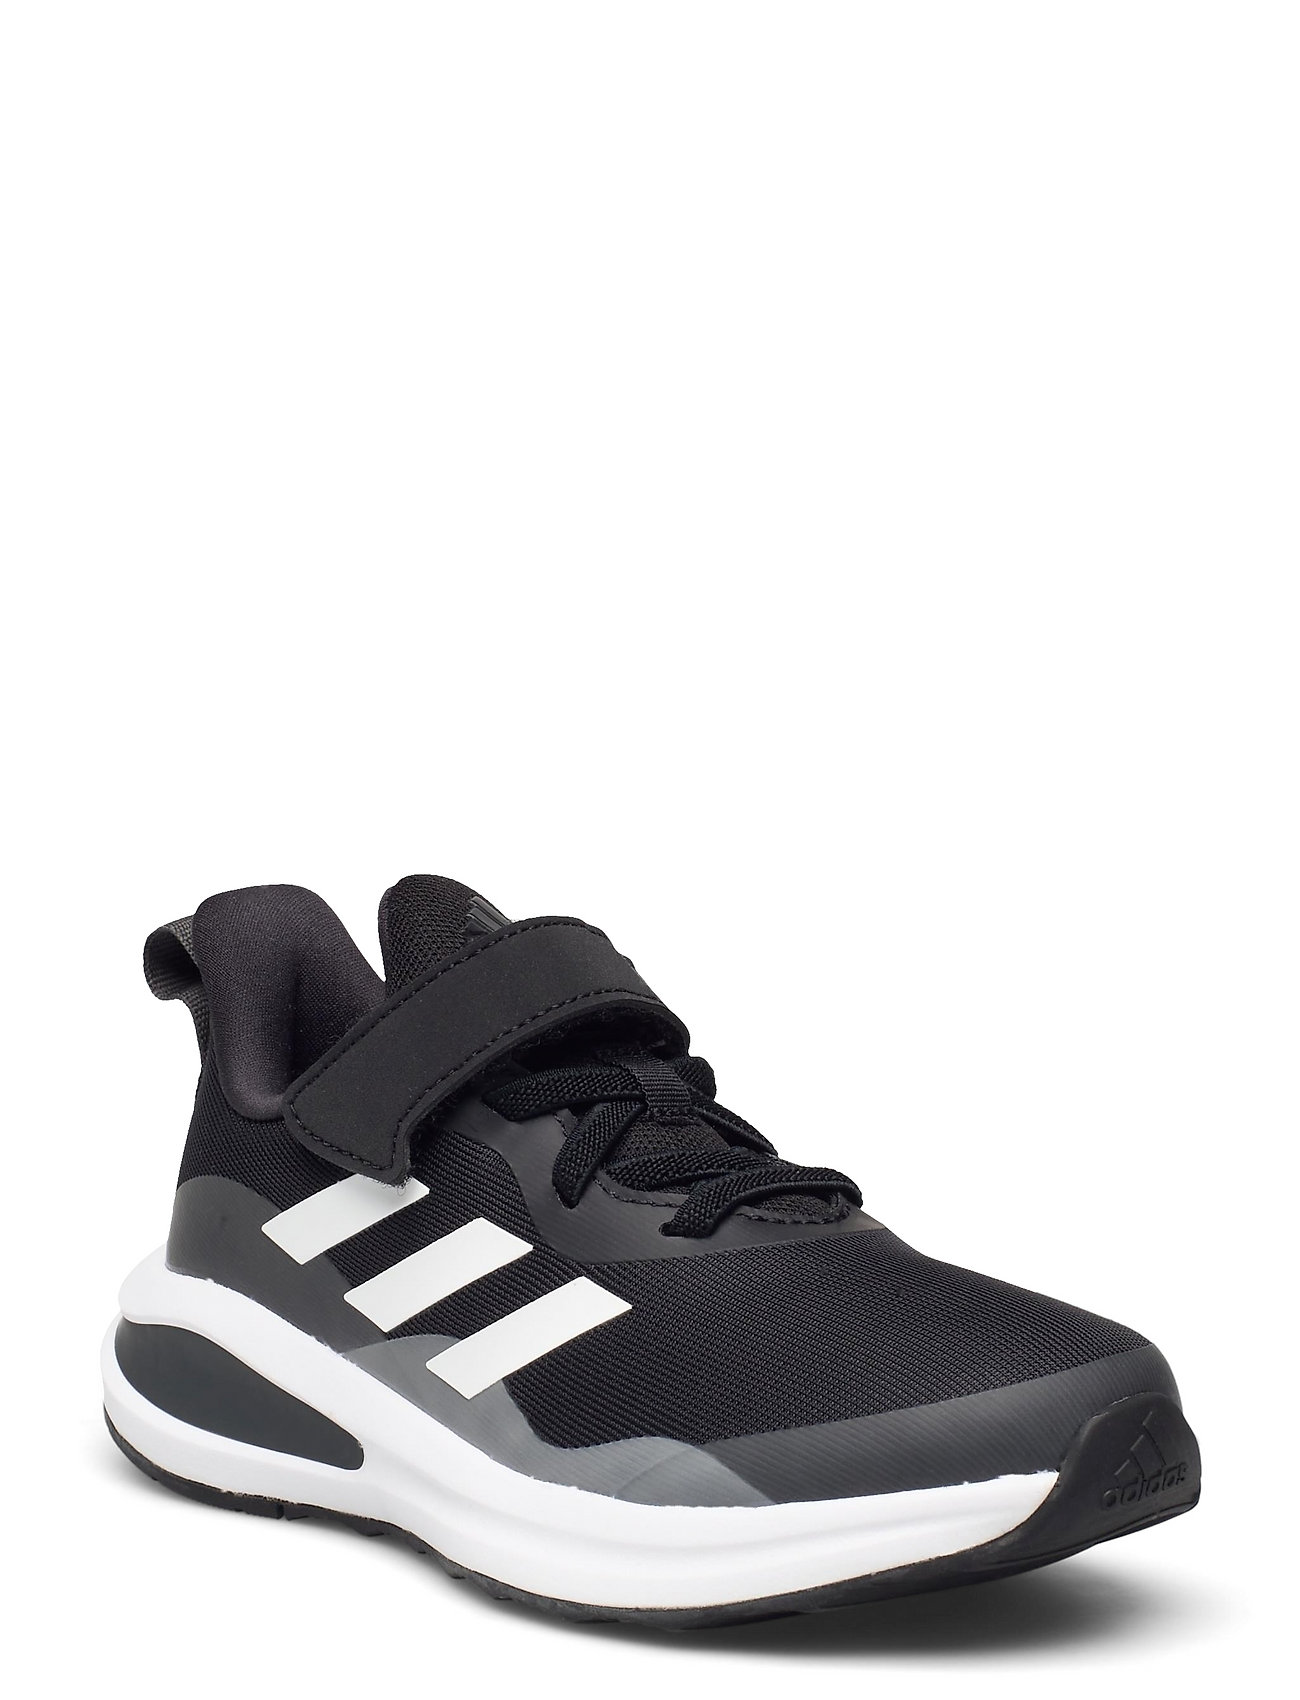 Fortarun Elastic Lace Top Strap Running Shoes Sports Shoes Running/training Shoes Sort Adidas Performance